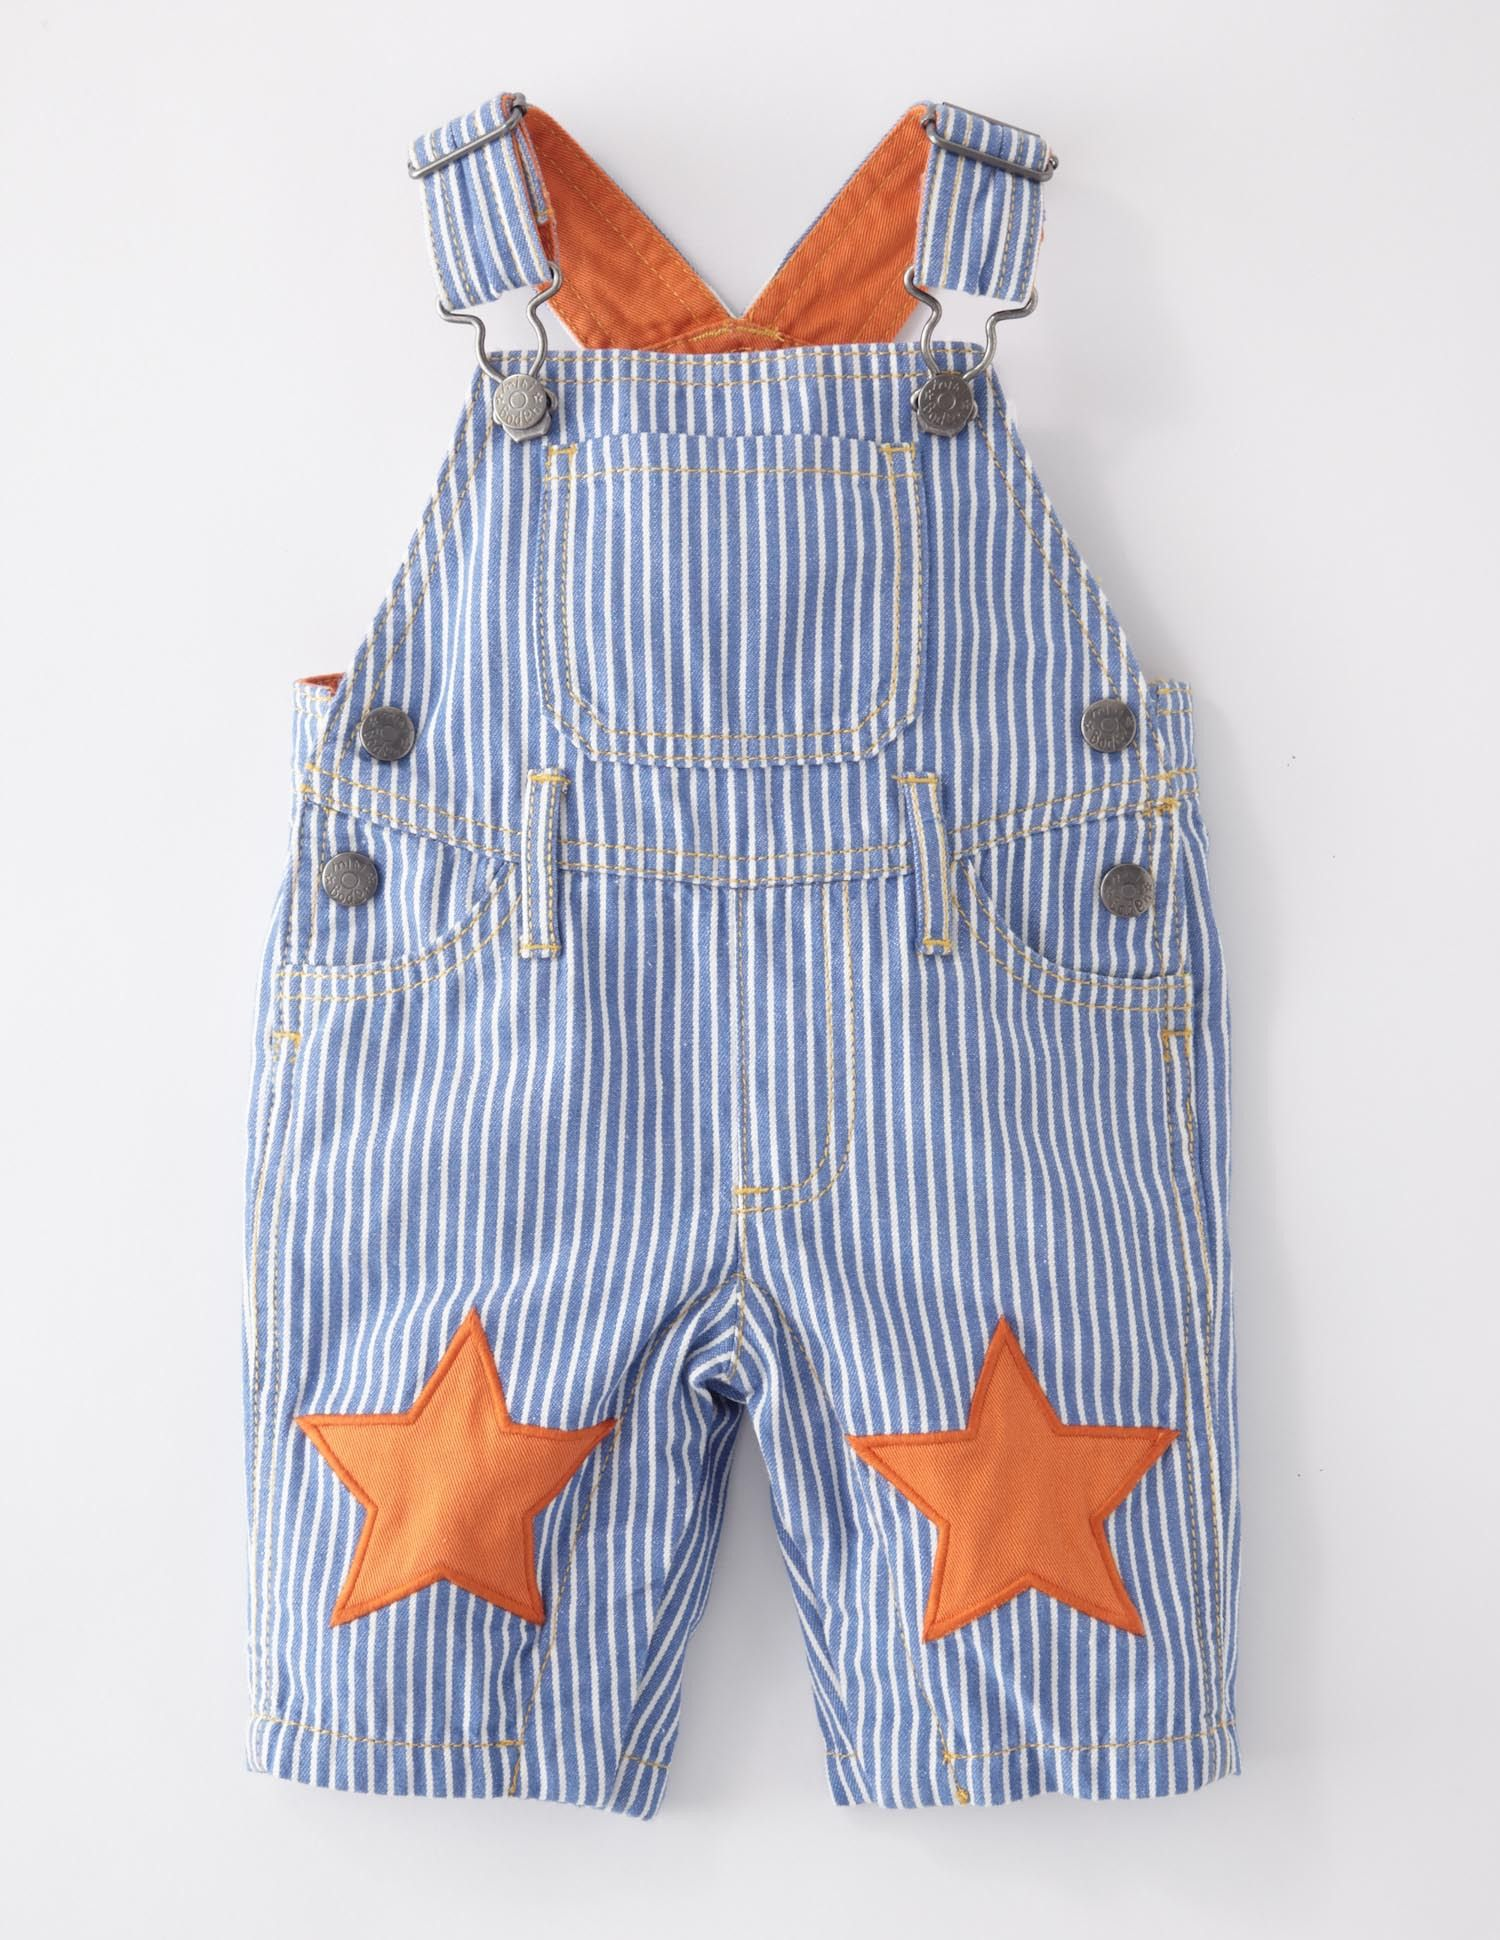 star patch dungarees 72125 boys at boden for the grand. Black Bedroom Furniture Sets. Home Design Ideas